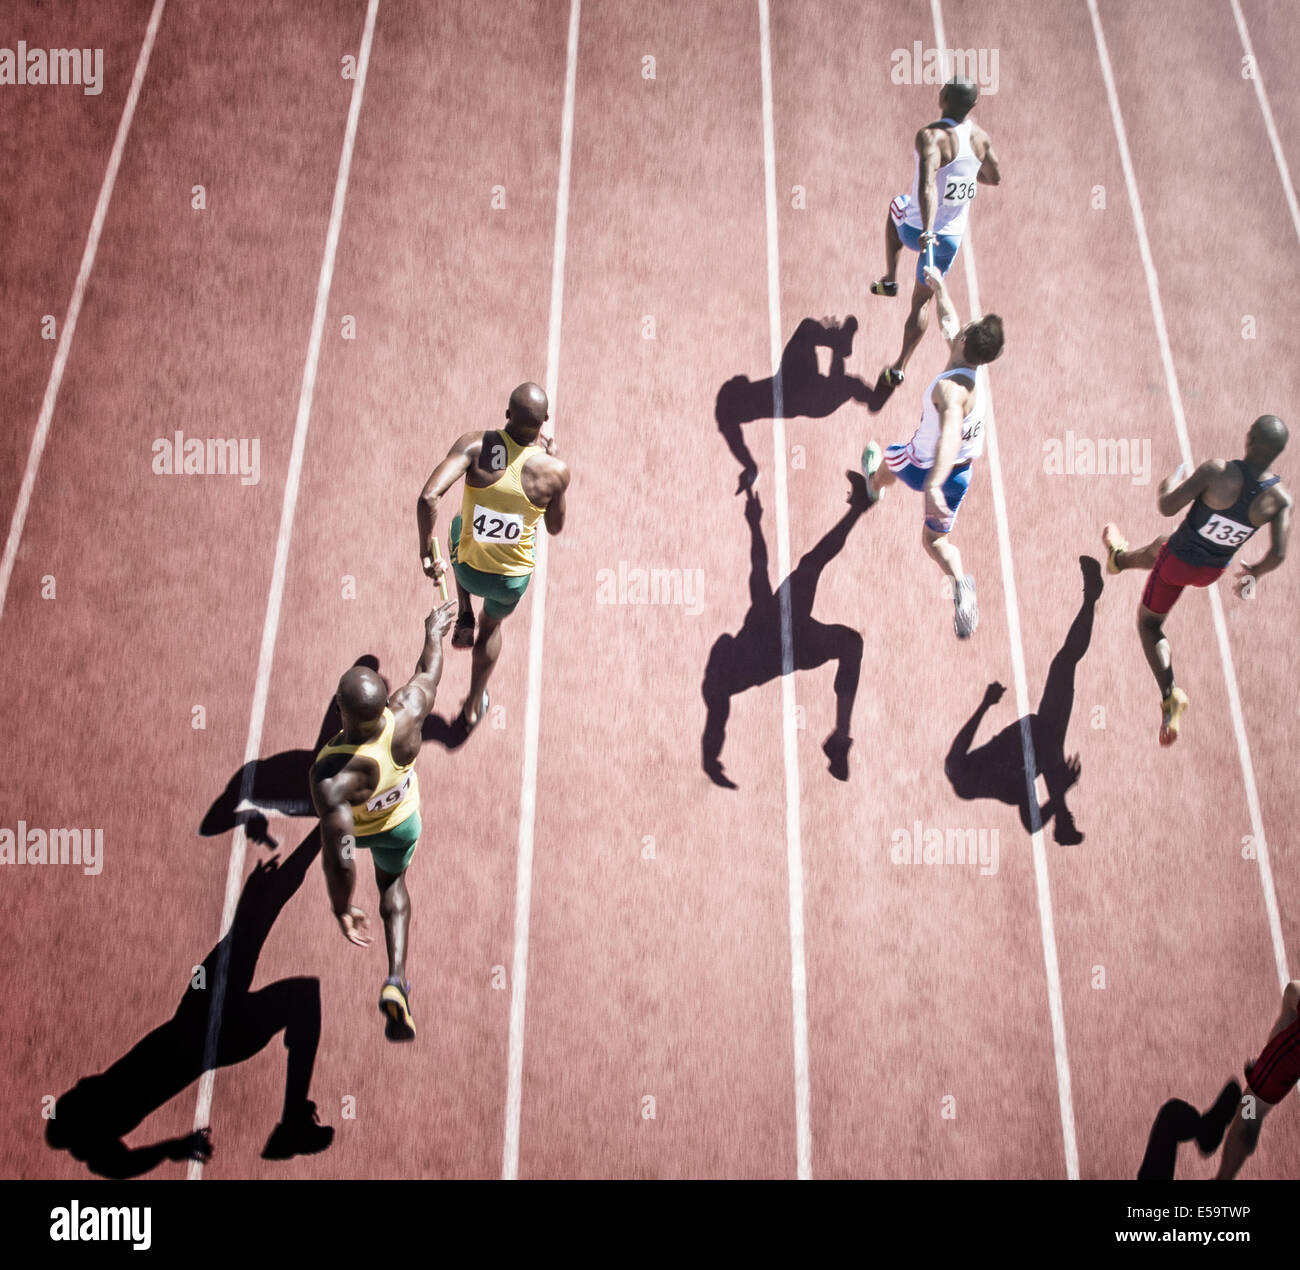 Relay runners handing off baton on track - Stock Image